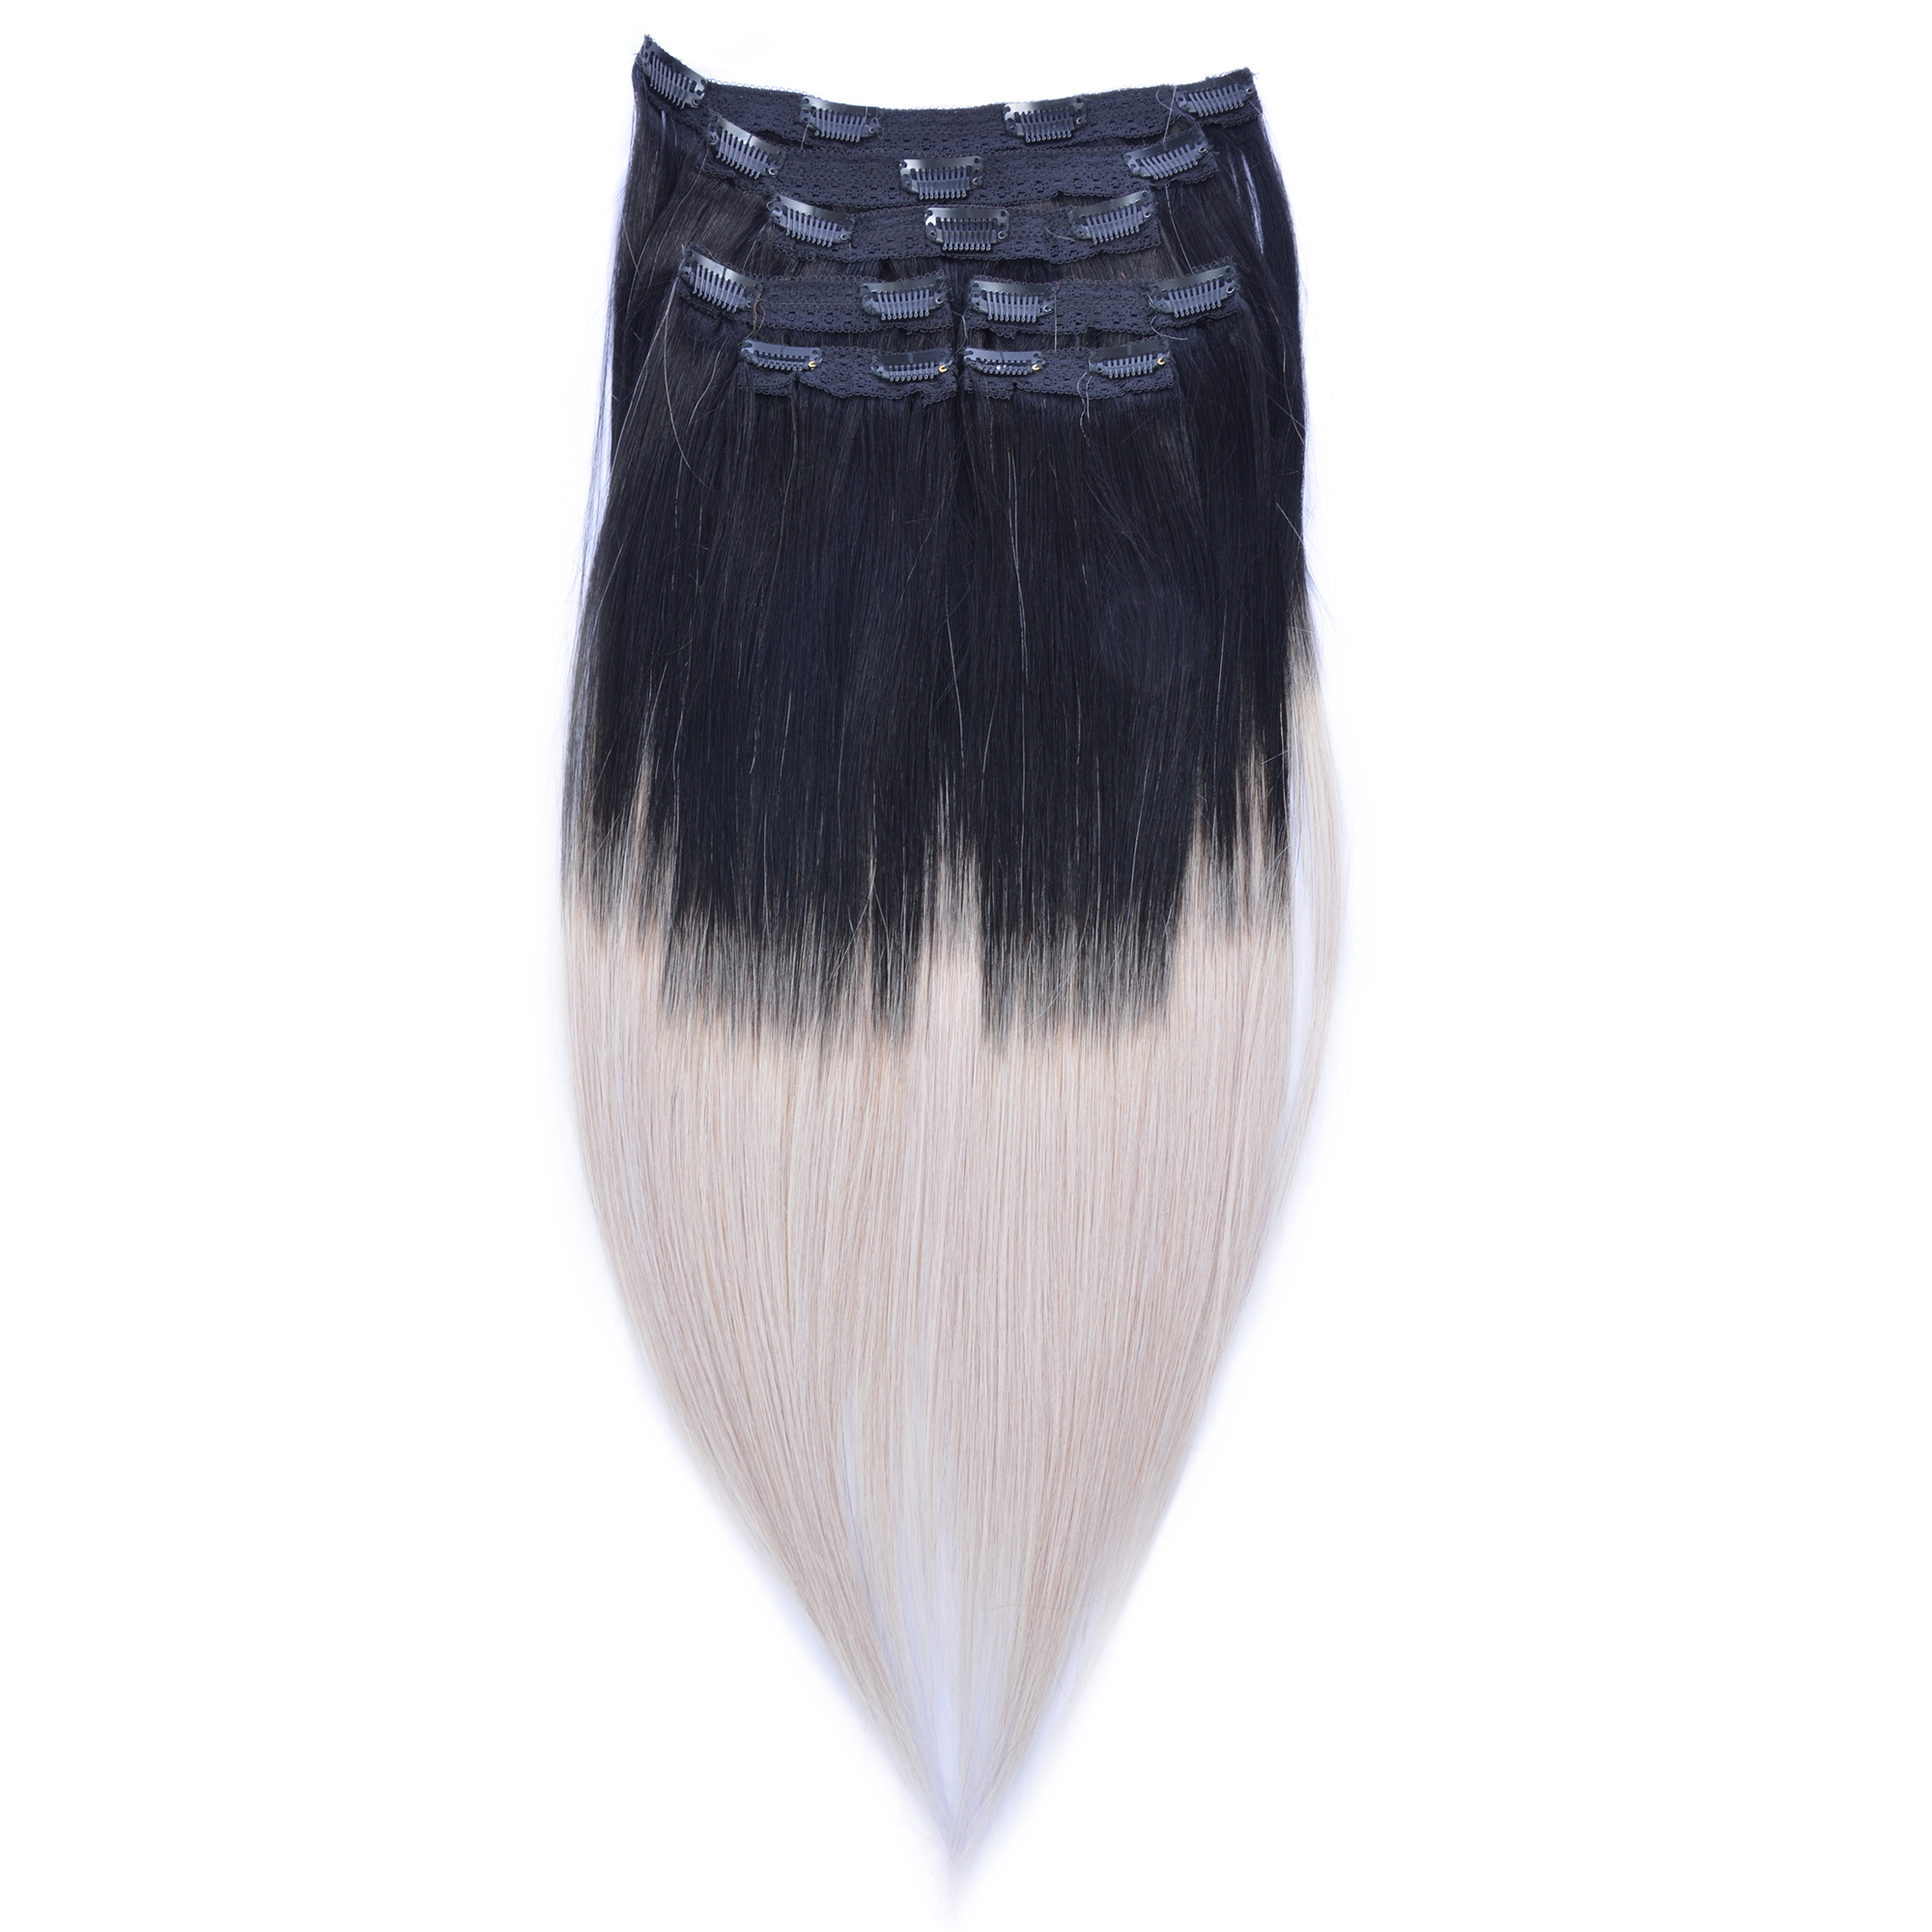 "Clip Set Silky Straight in 18"" - 7 Pcs."